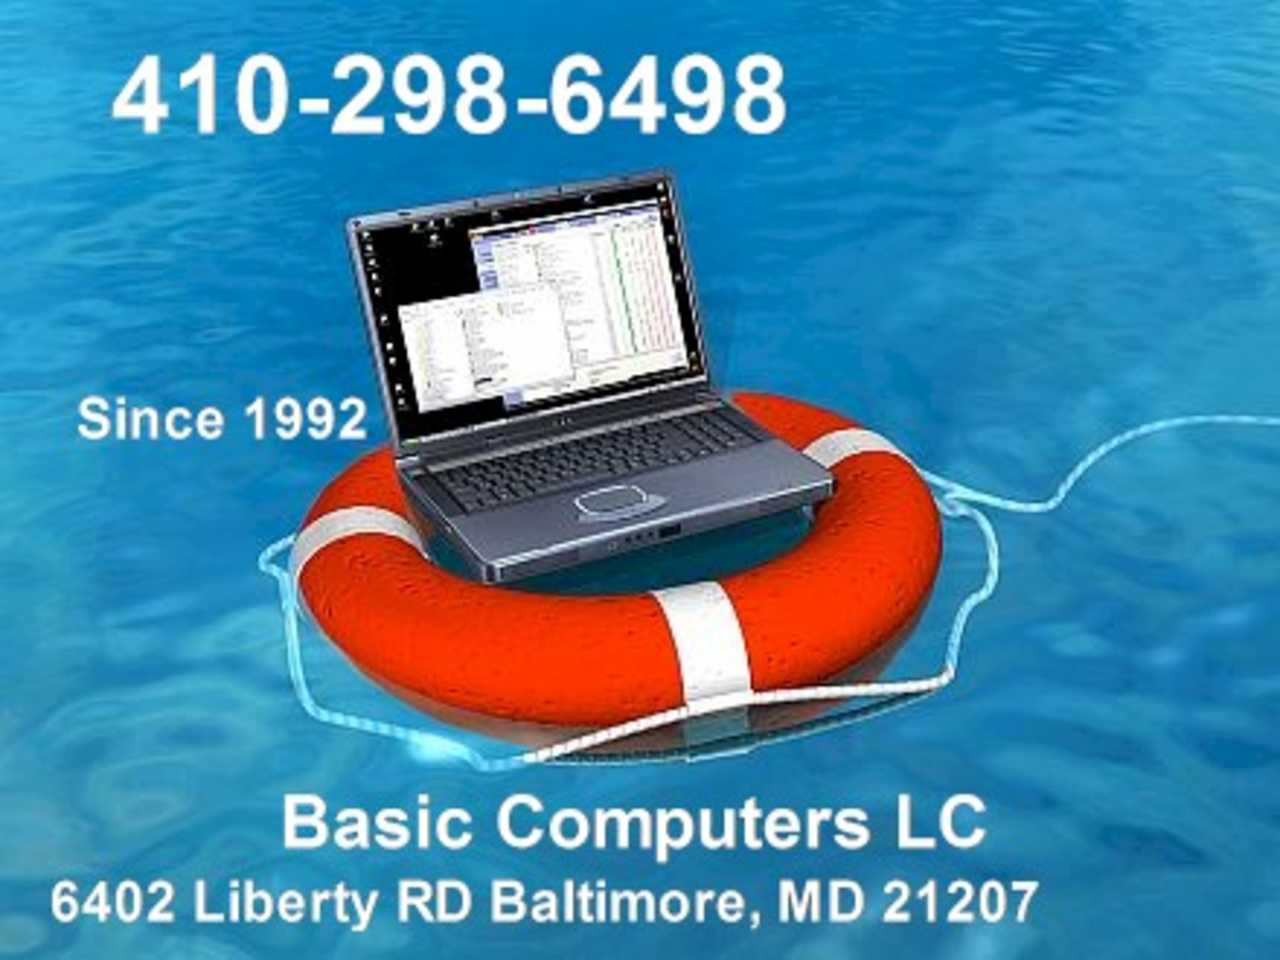 Basic Computers LC - Services - Repair Shops in Baltimore MD